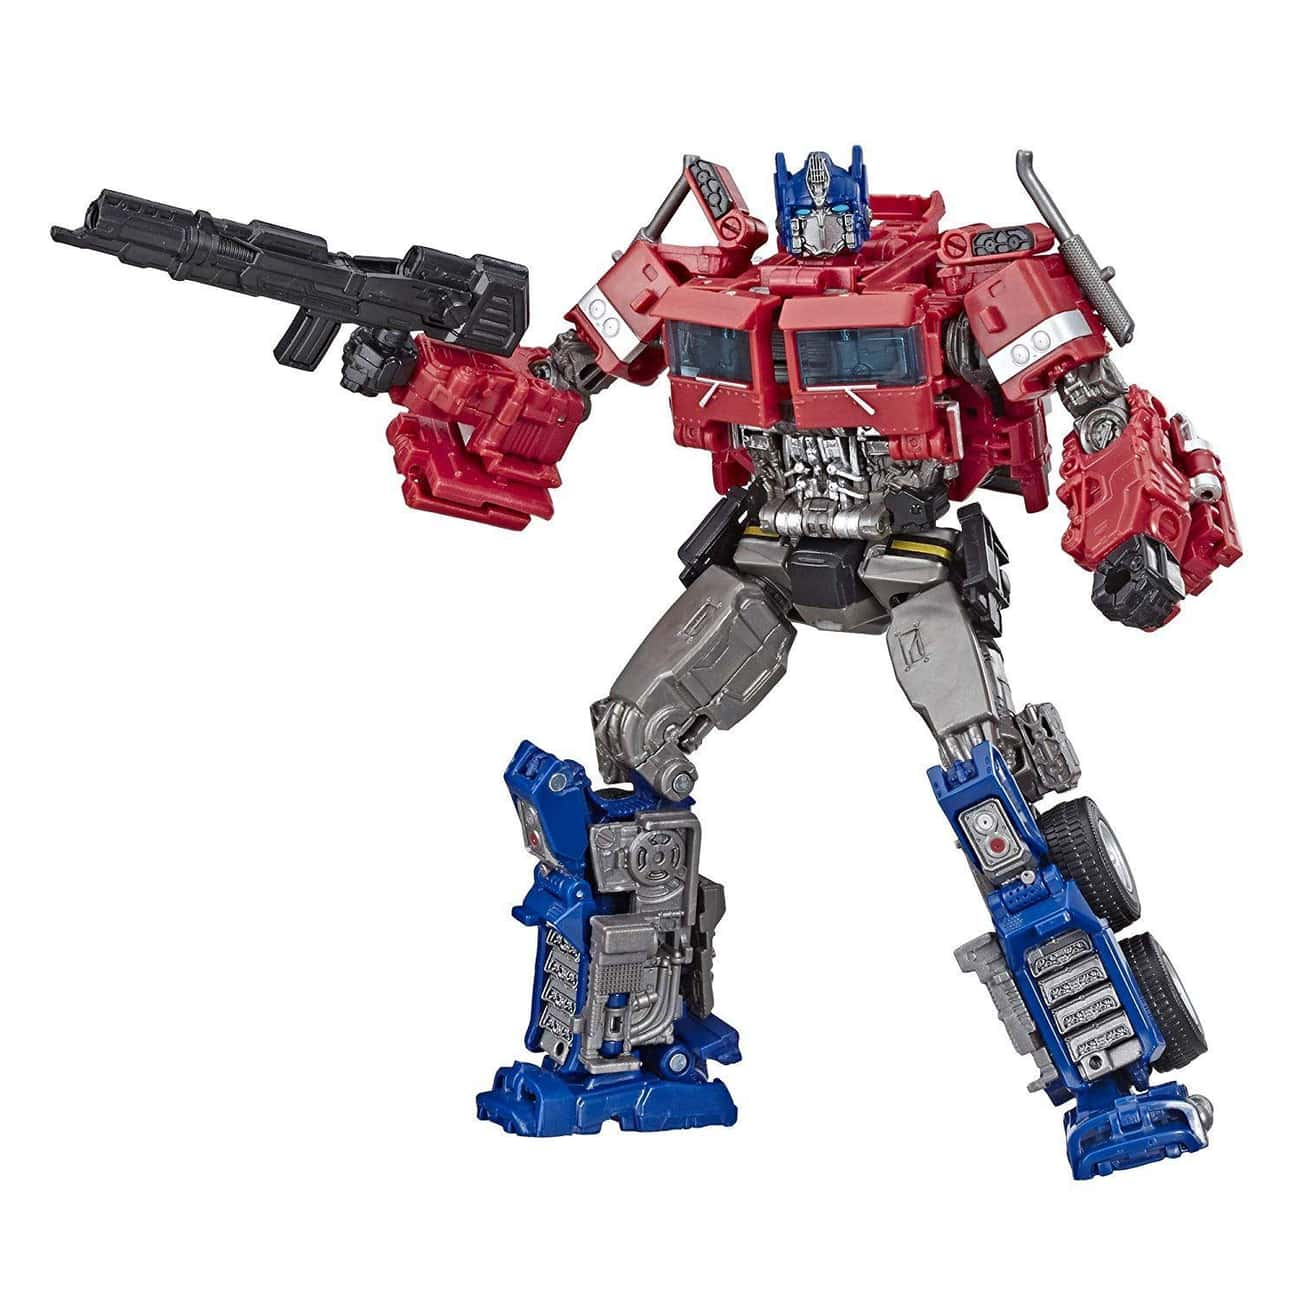 Transformers Toys Studio Serie is listed (or ranked) 2 on the list The Best Transformers: Studio Series Toys, Ranked